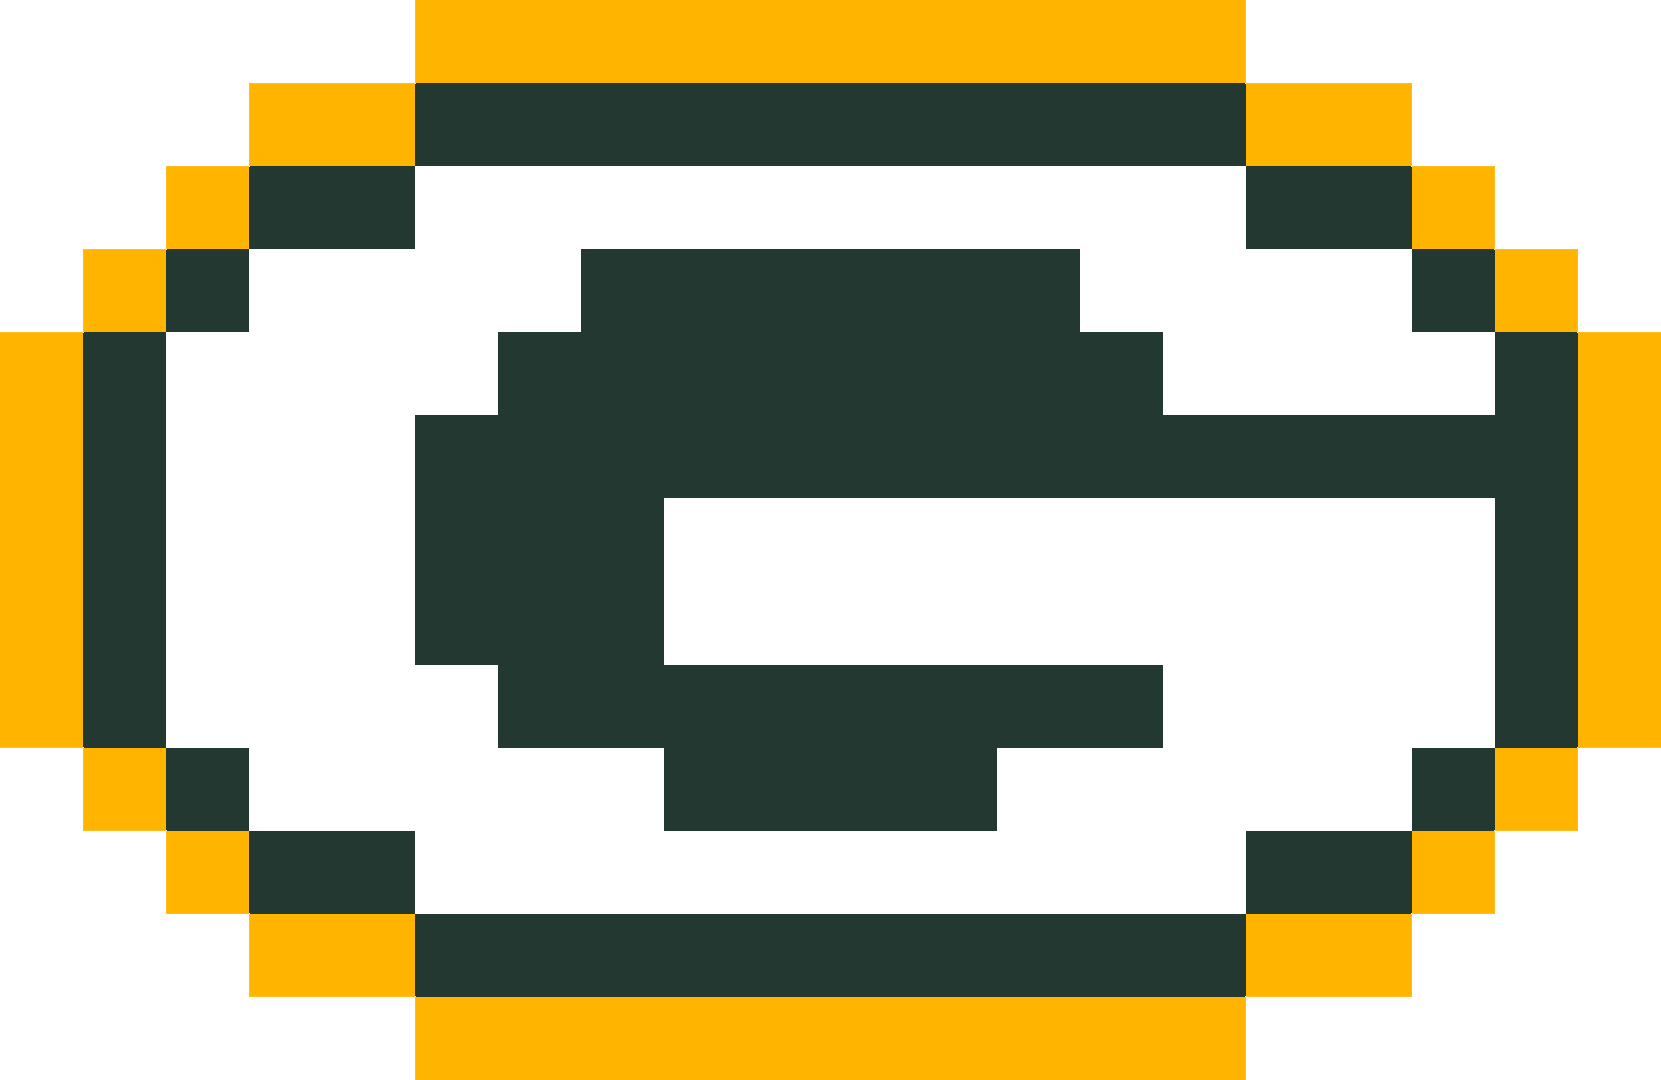 Download Minecraft Green Bay Packers Logo Terraria Slime Pixel Art Full Size Png Image Pngkit